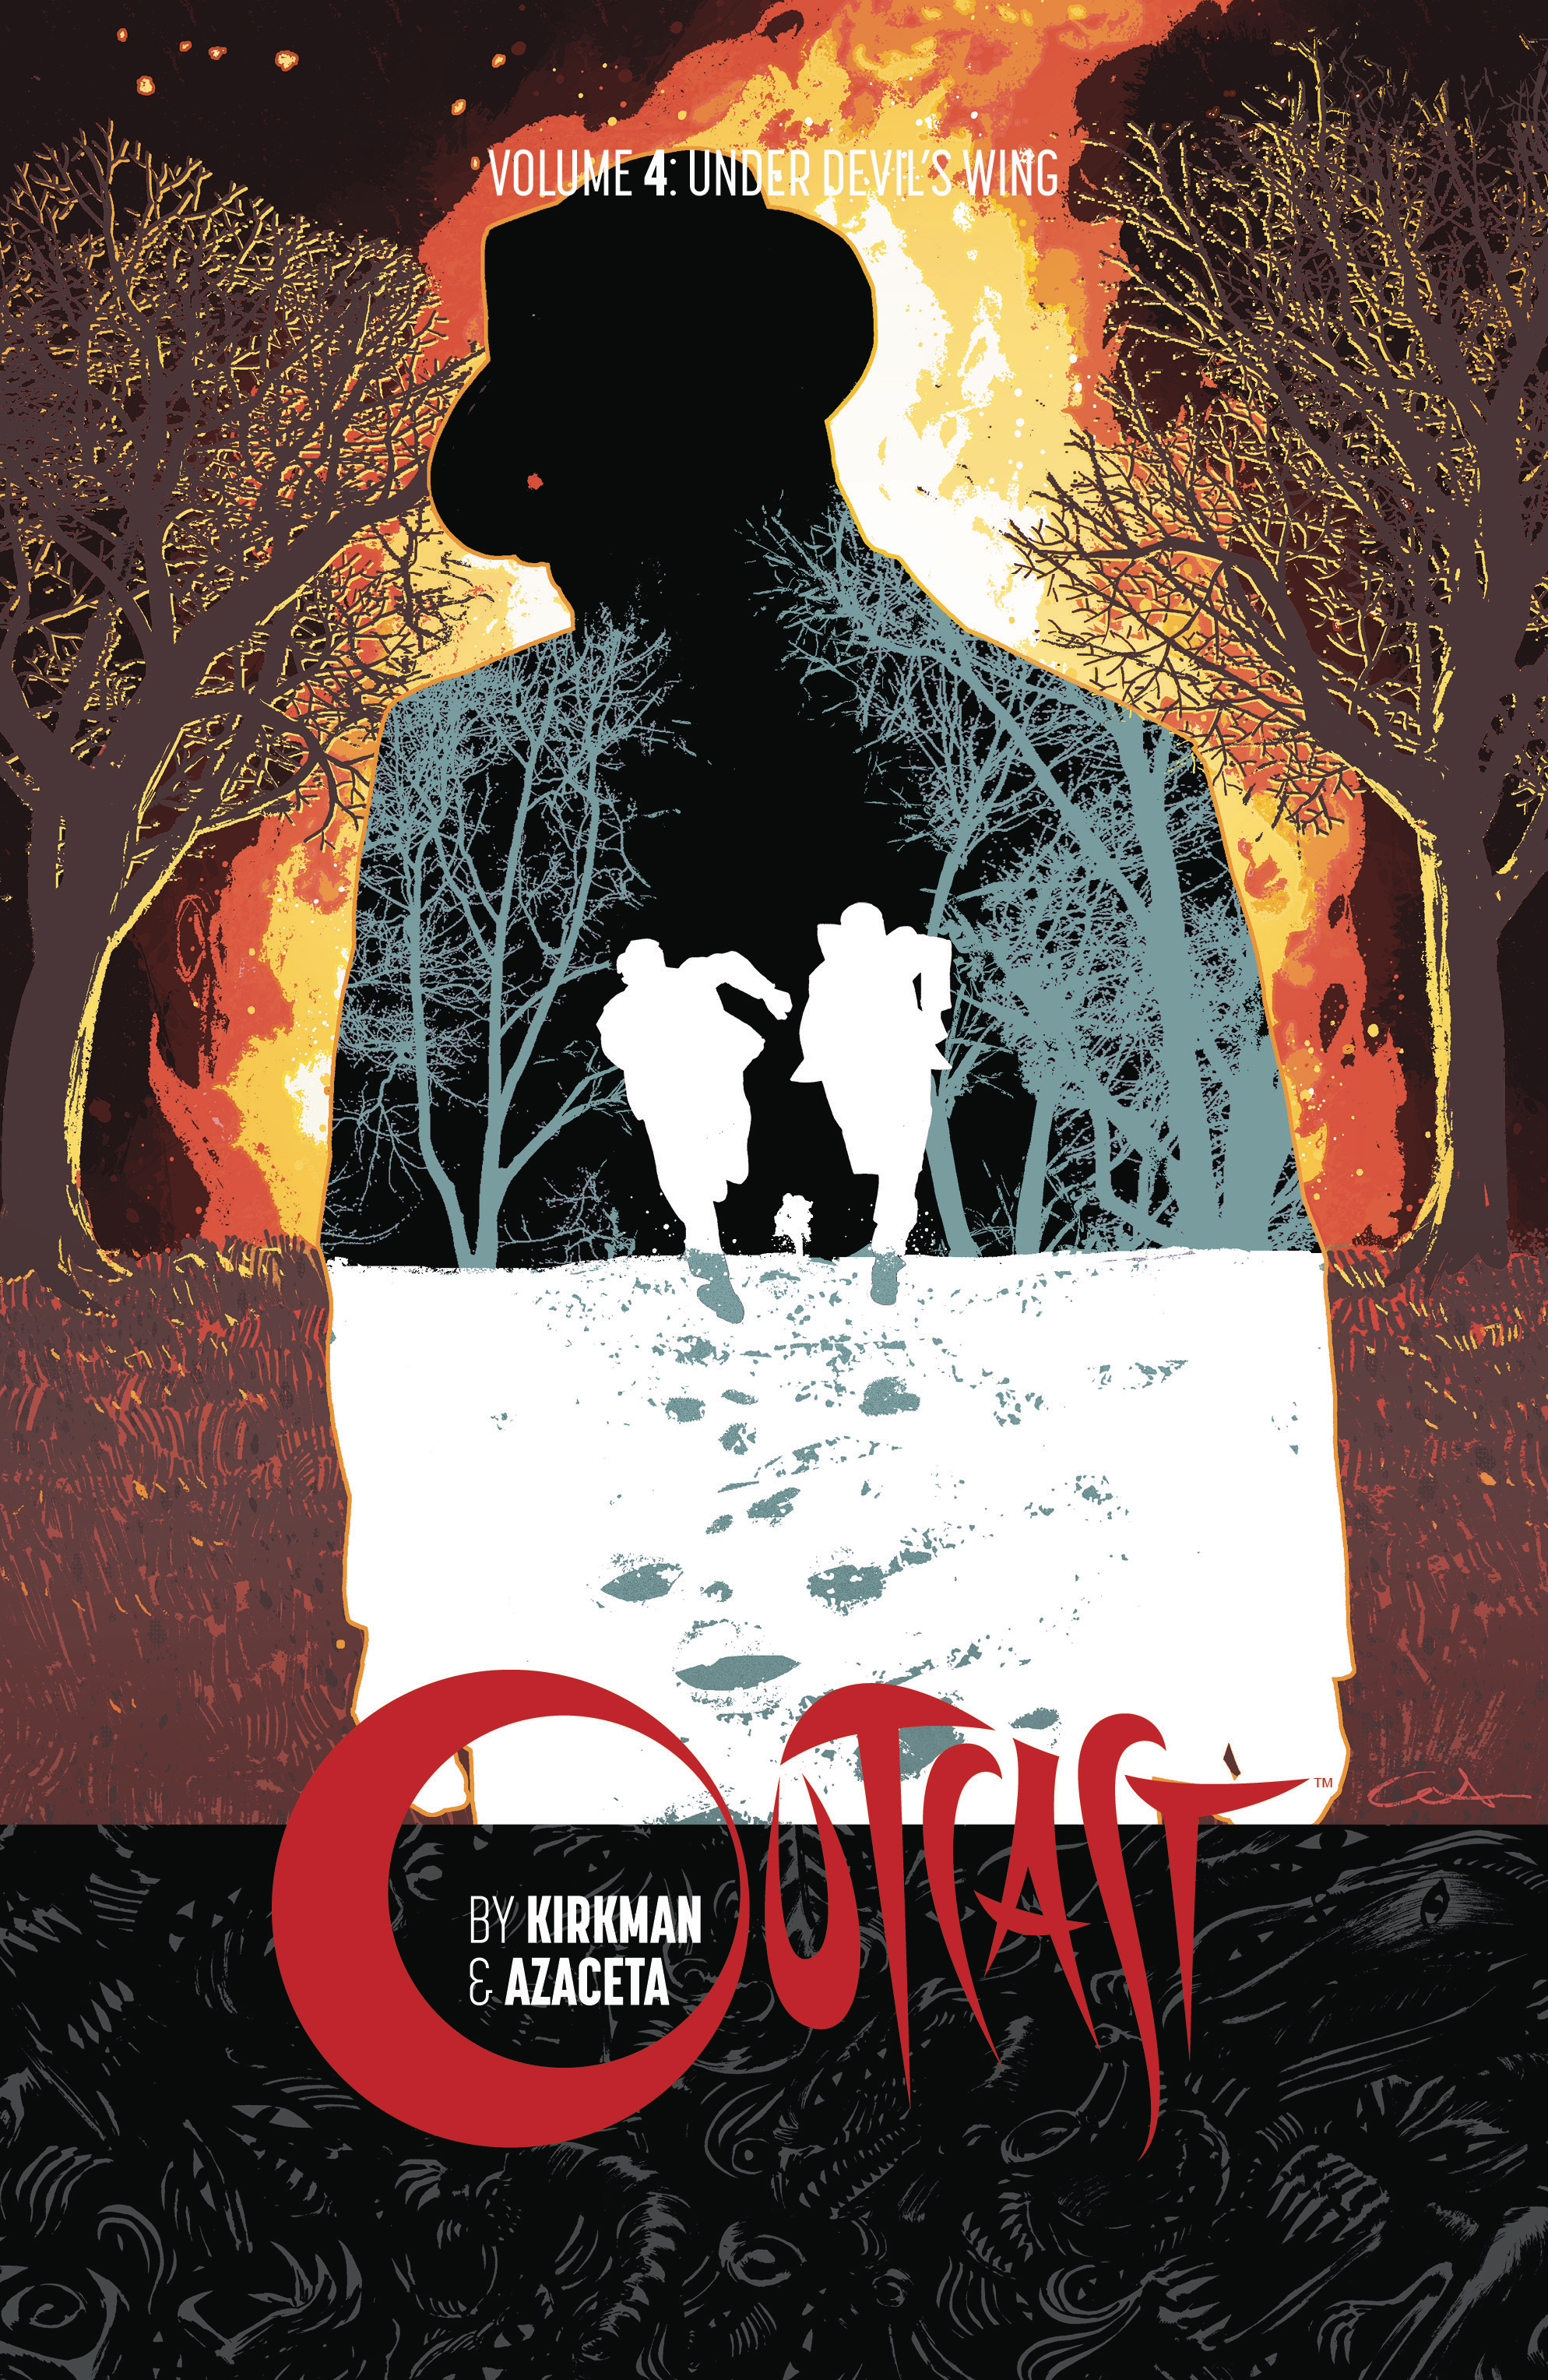 OUTCAST BY KIRKMAN & AZACETA TP VOL 04 (DEC160821) (MR)